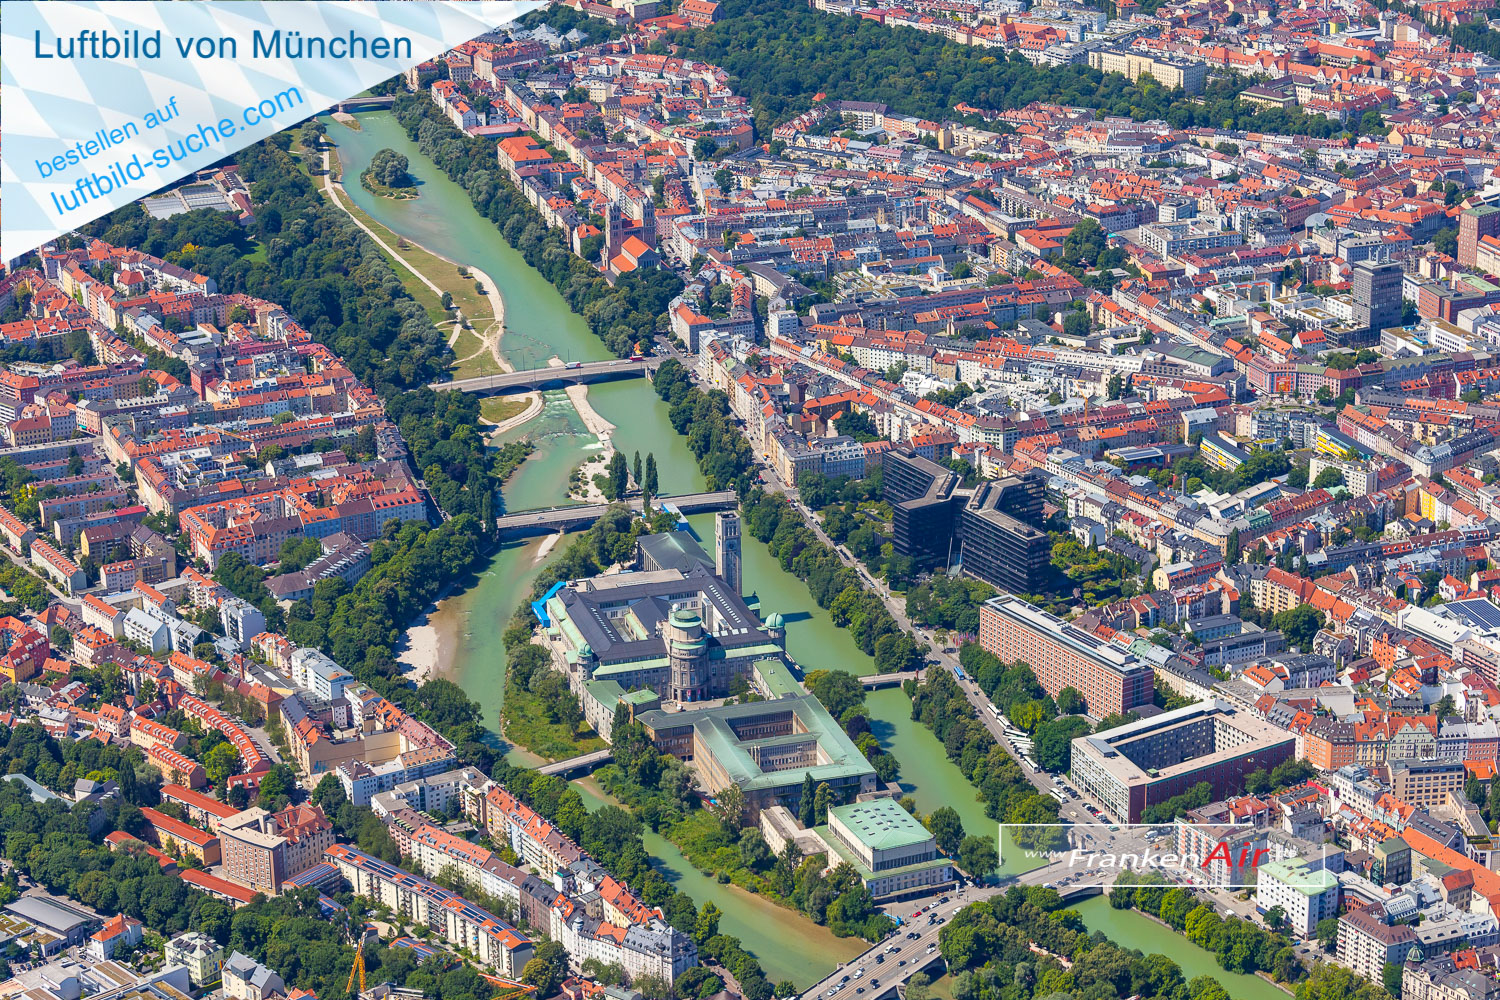 Museumsinsel-muenchen-17-2383